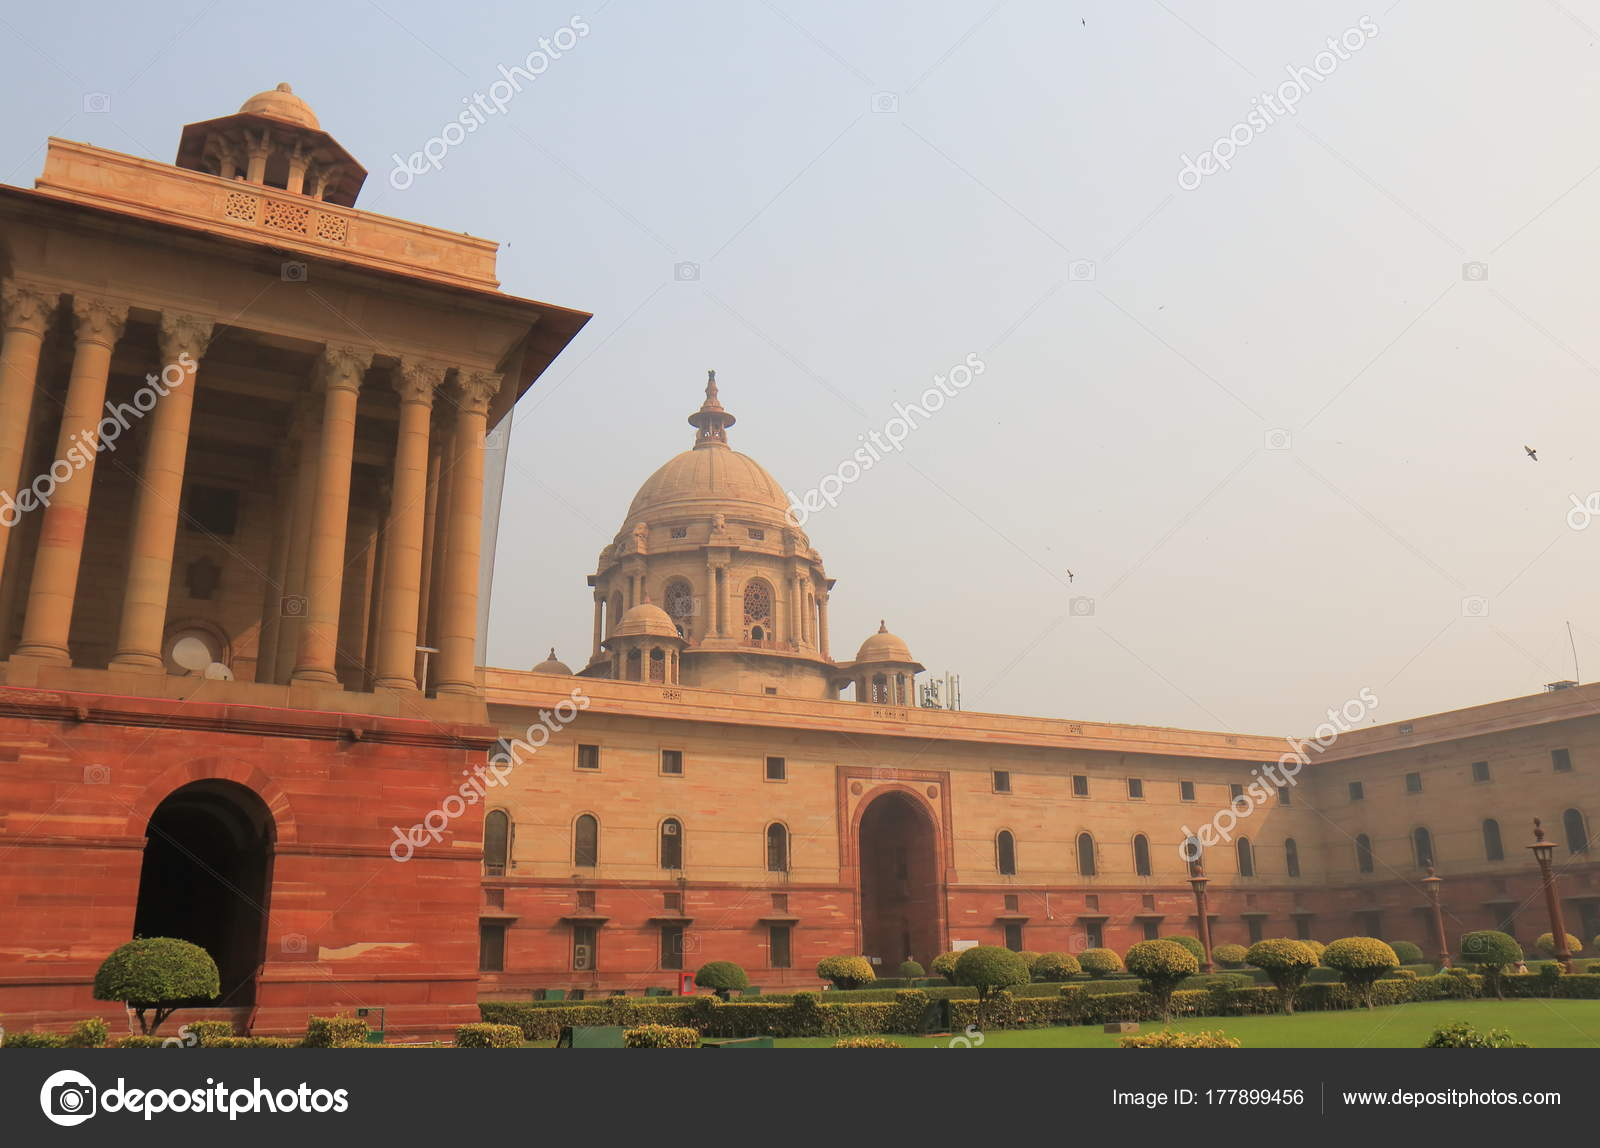 https://st3.depositphotos.com/3904453/17789/i/1600/depositphotos_177899456-stock-photo-indian-government-ministry-home-affairs.jpg